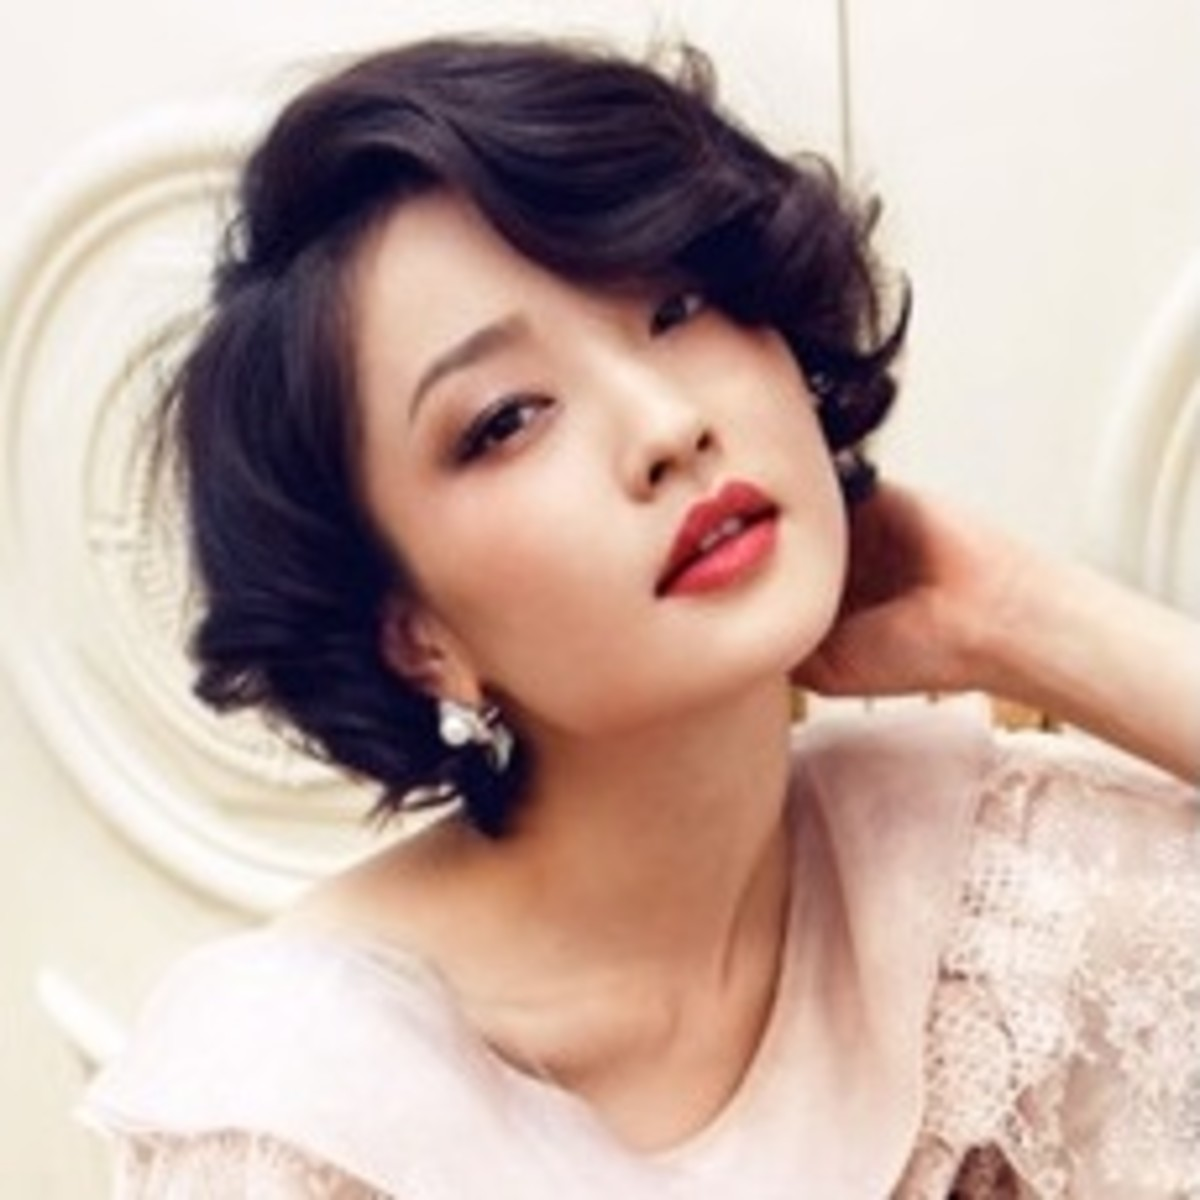 Short and curly hair for Chinese, Japanese, Korean, and Thai women.